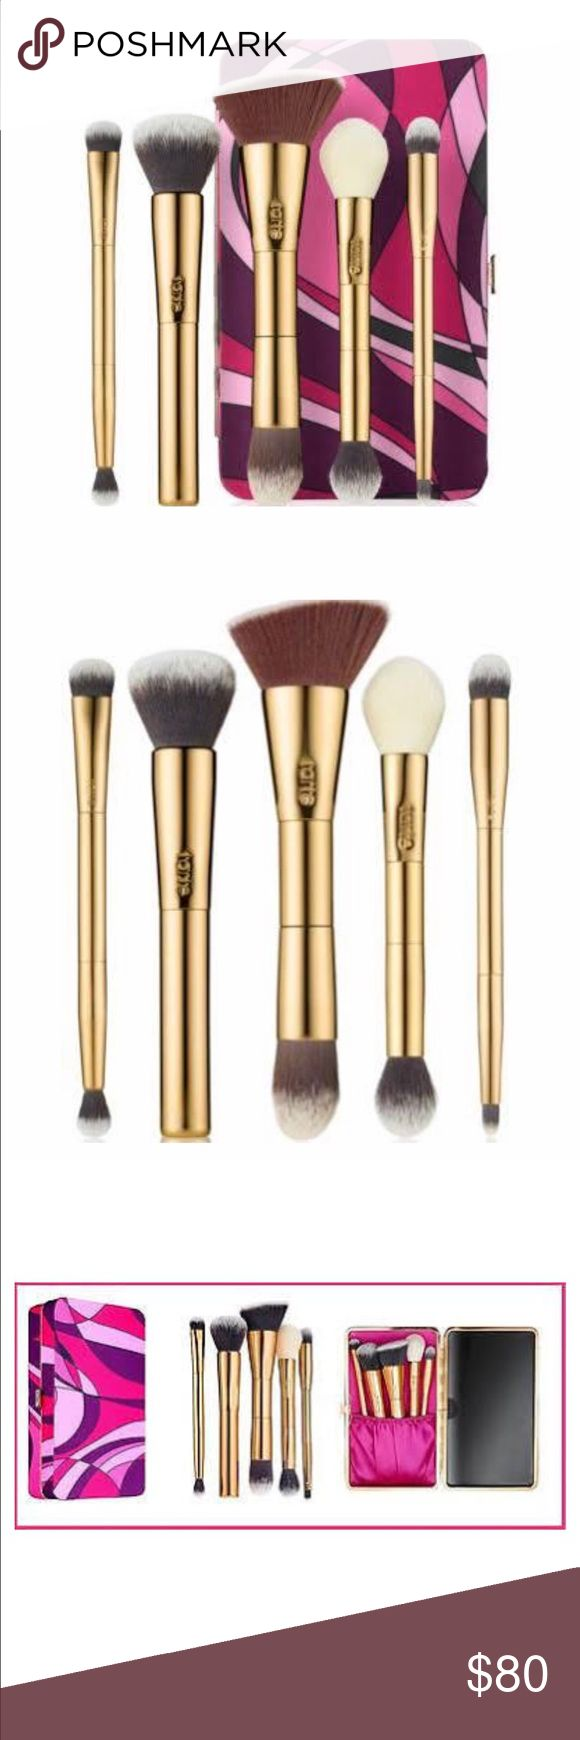 Tarte brush set! 5 brushes, 4 are double ended. Great value set. Sold out everywhere. Comes with case, which can be a customizable palette. All brand new in box. tarte Makeup Brushes & Tools